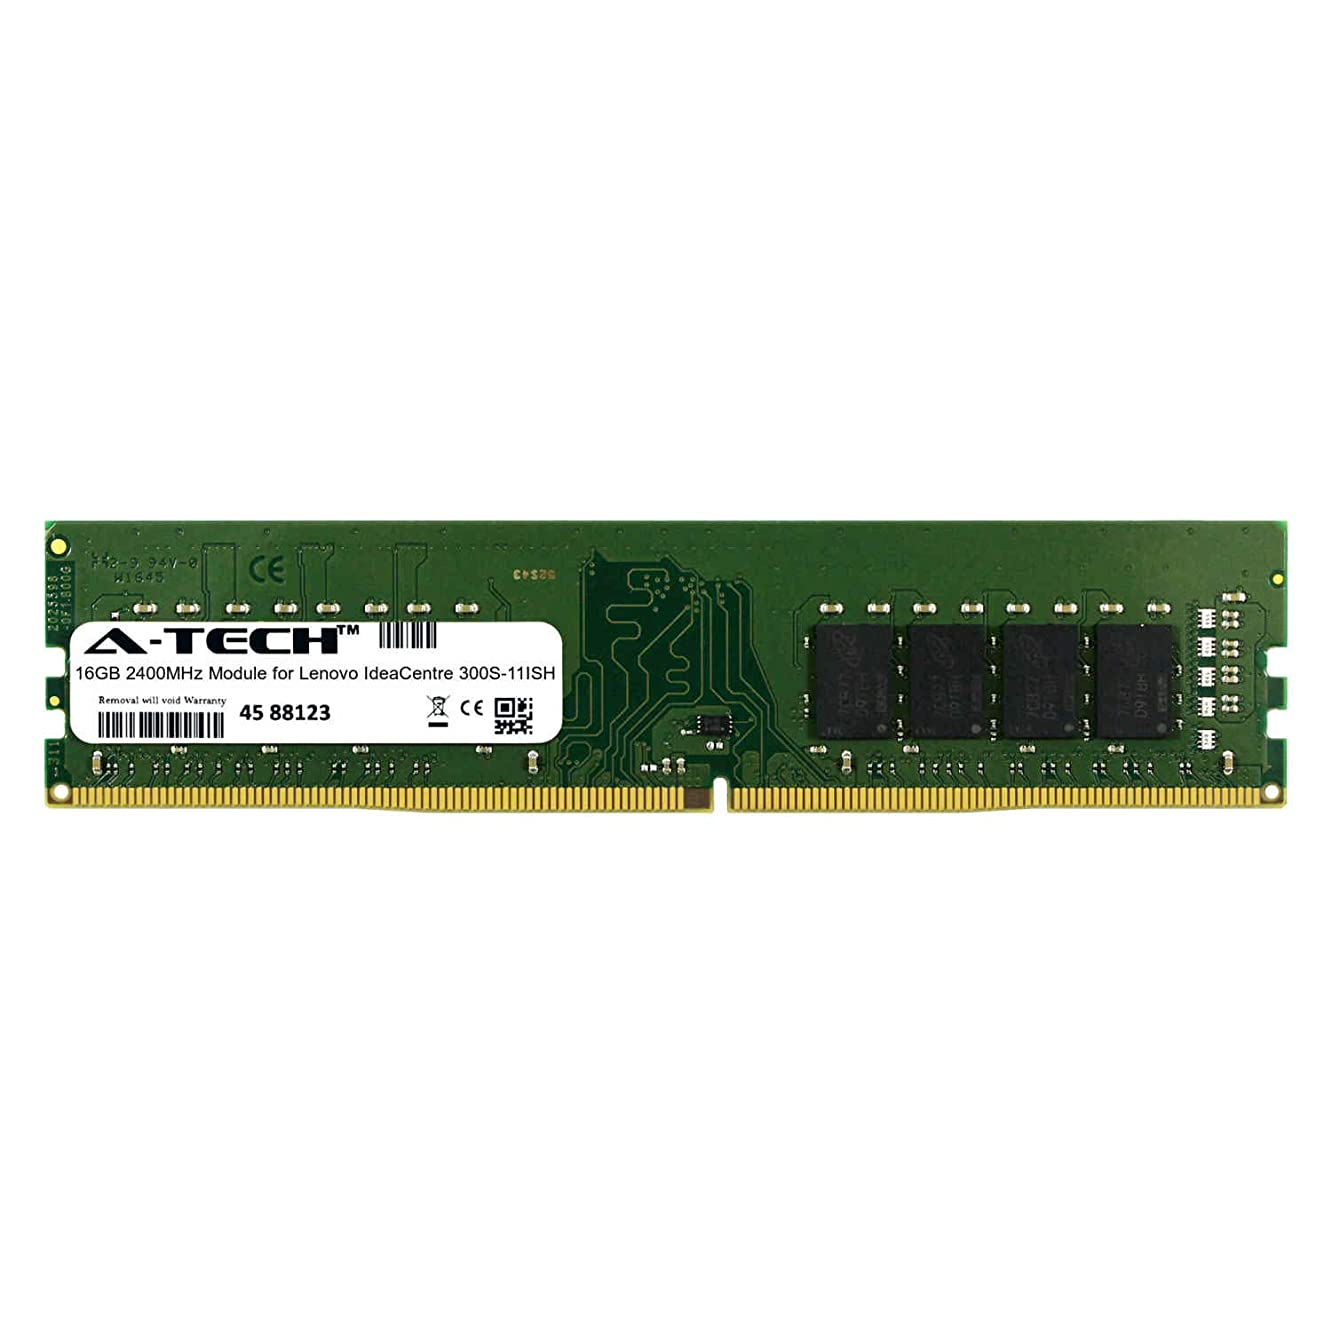 A-Tech 16GB Module for Lenovo IdeaCentre 300S-11ISH Desktop & Workstation Motherboard Compatible DDR4 2400Mhz Memory Ram (ATMS276787A25822X1)